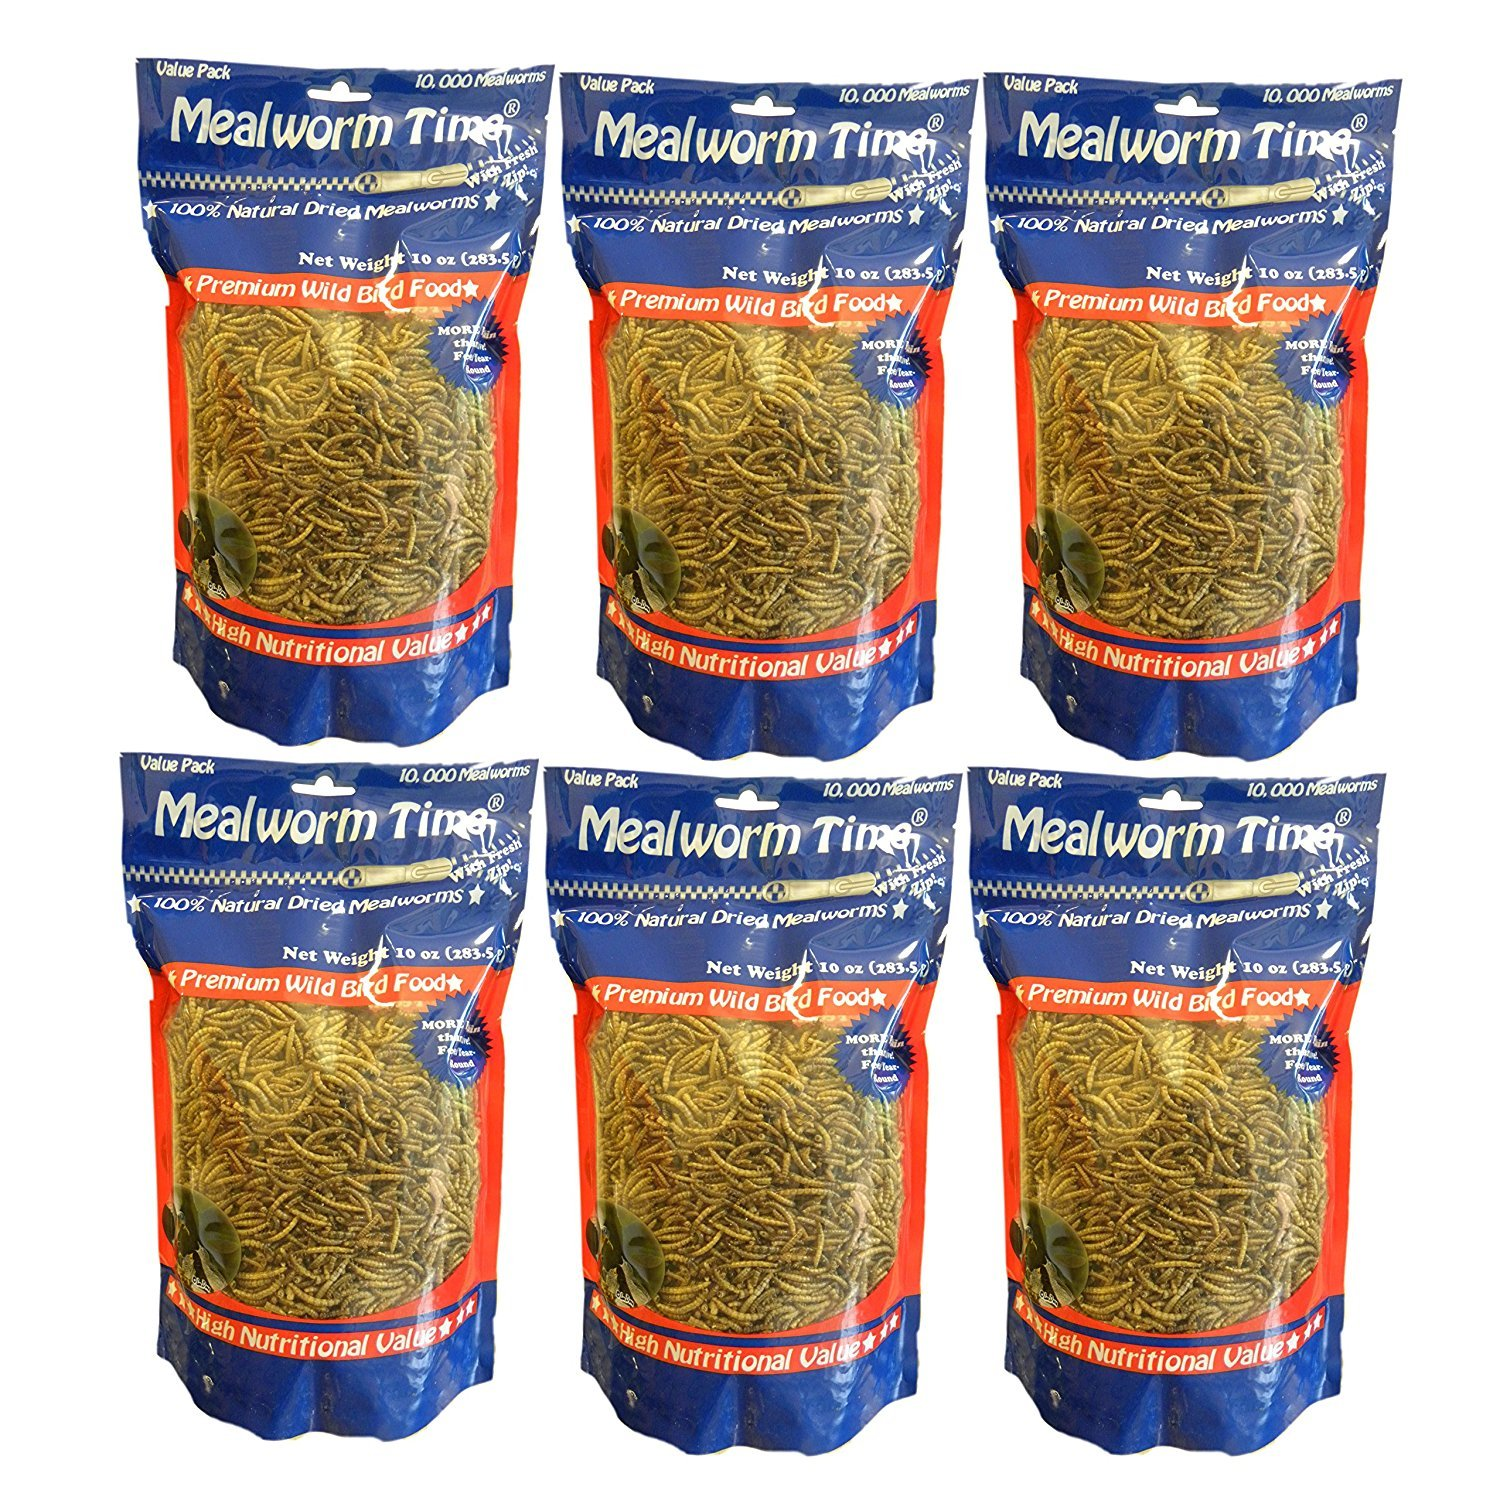 MealwormTime Dried Mealworms - 10oz (Case of 6)